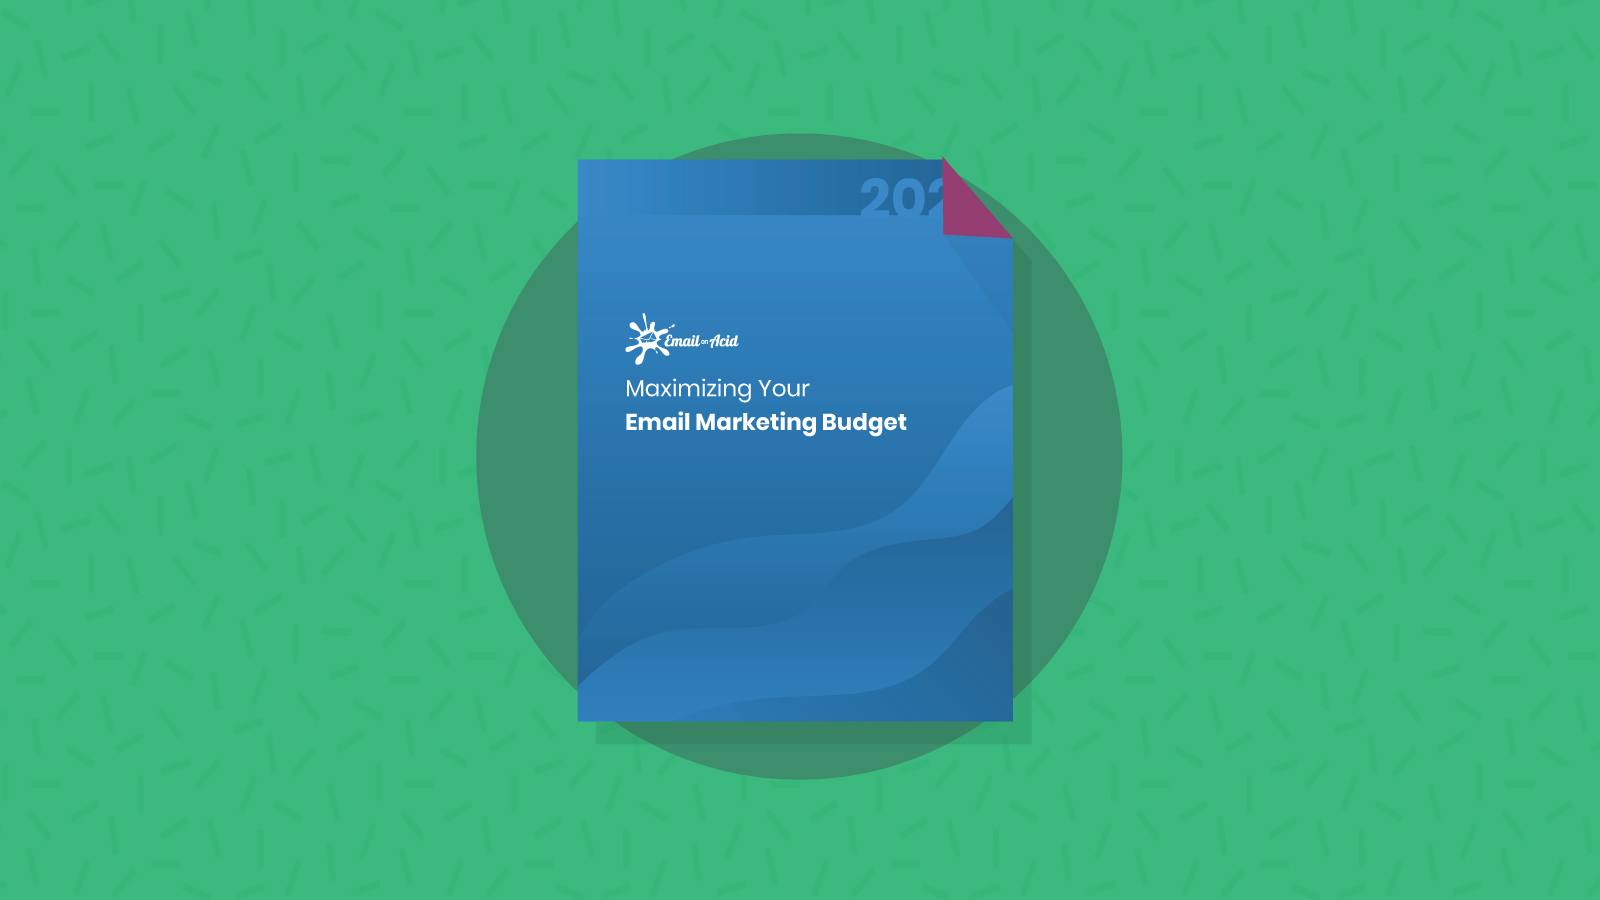 Maximizing Your Email Marketing Budget